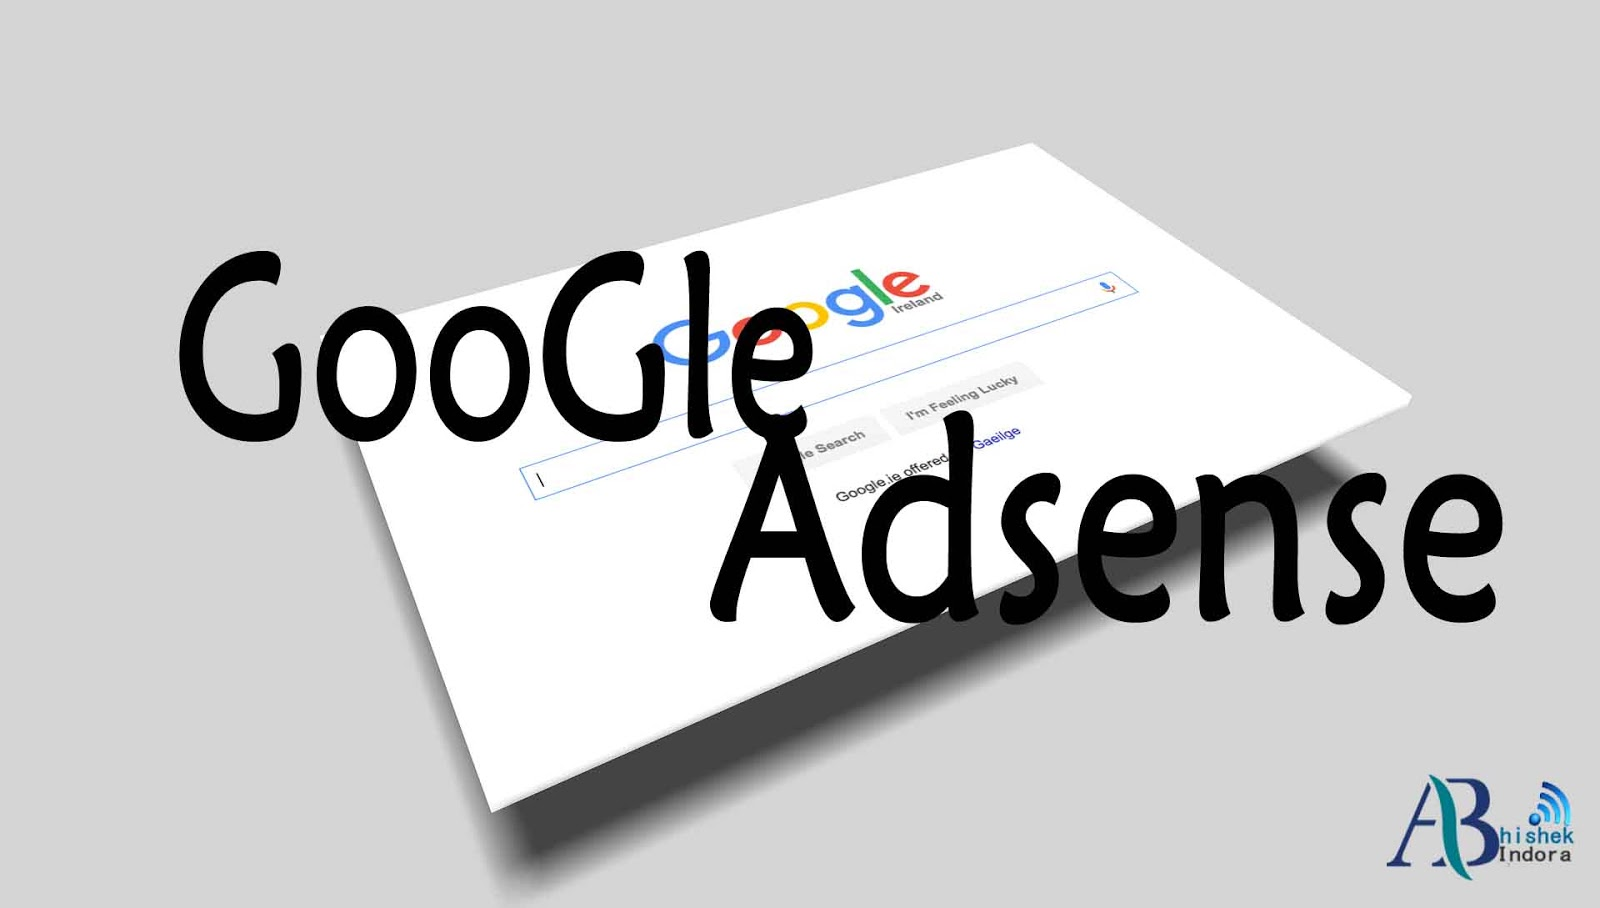 how to approve google adsense for website,google adsense approval,how to setup google adsense,things to do before applying google adsense,things to do before applying for adsense